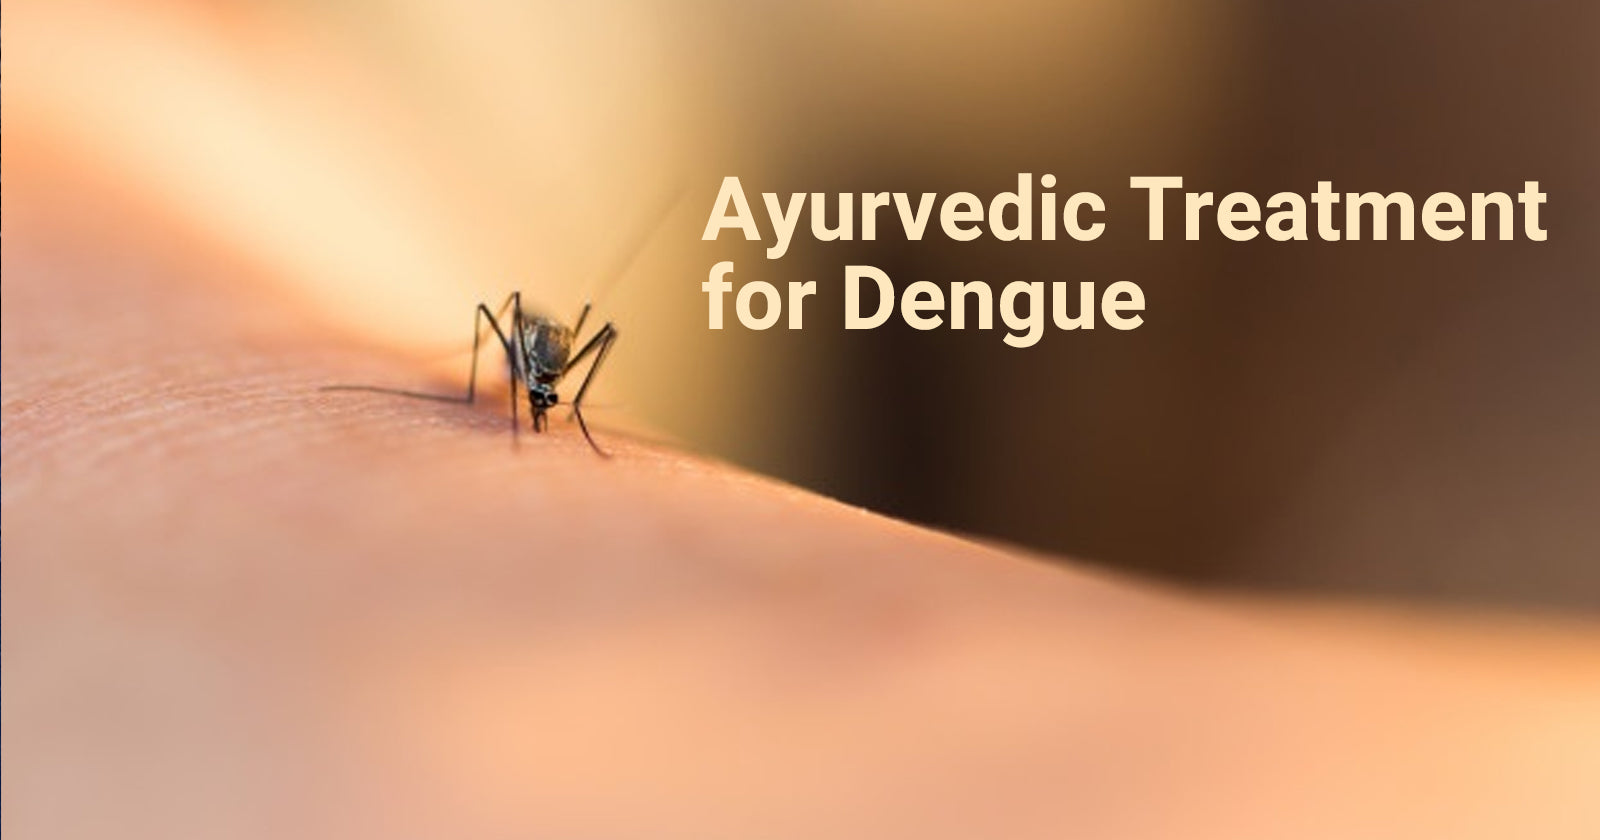 Dengue treatment in ayurveda